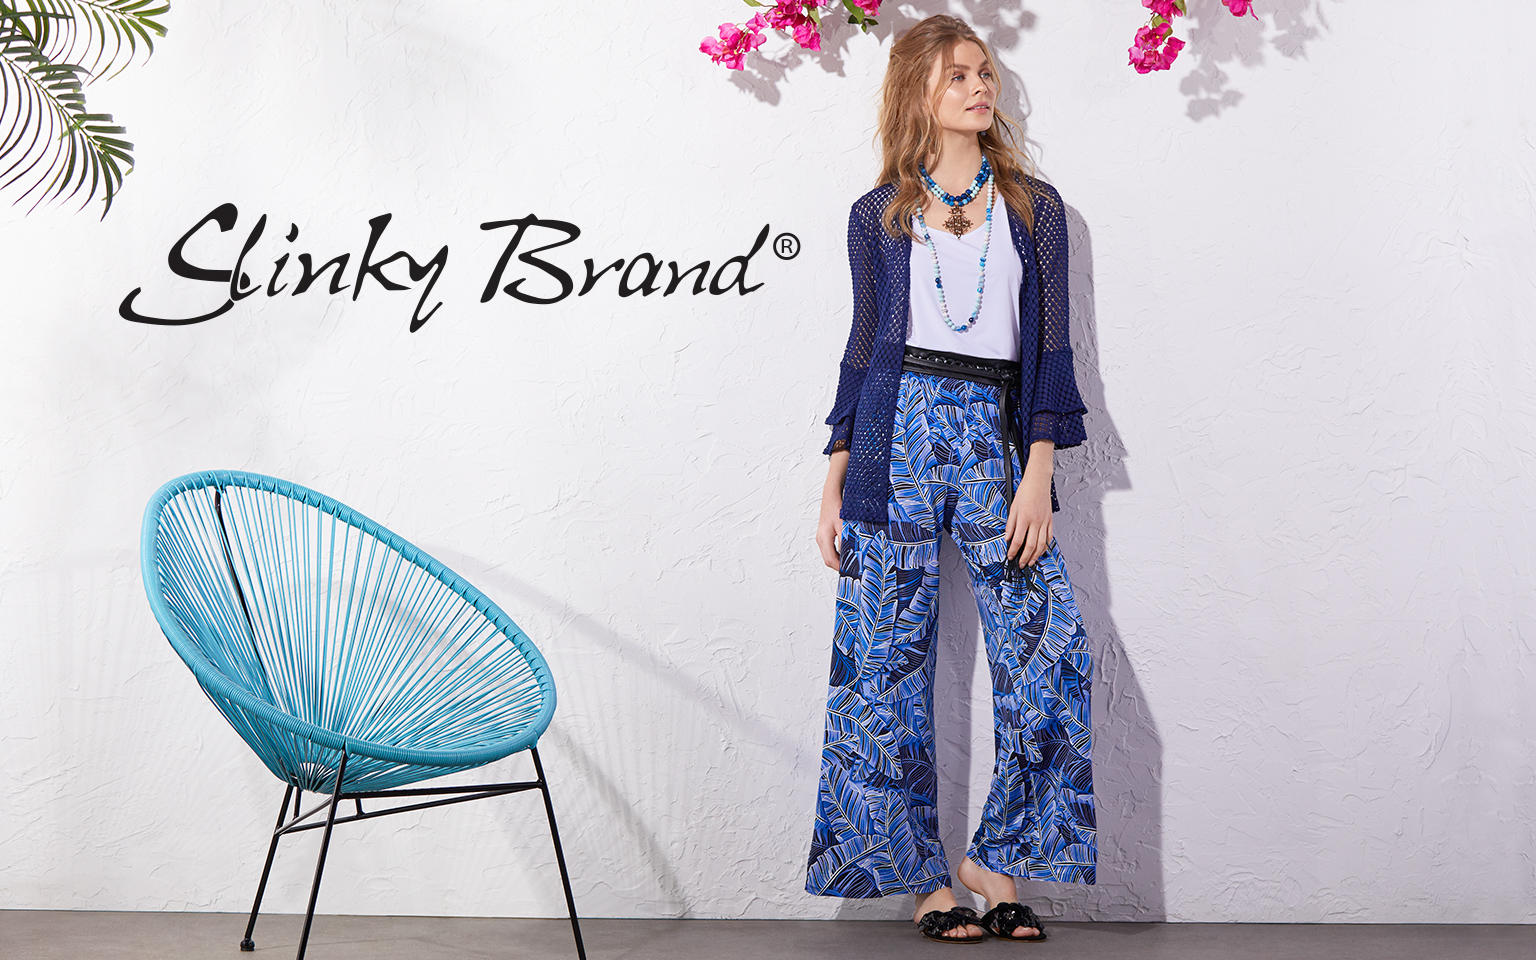 Slinky Brand. A woman in a white top and printed pants wears a blue see through jacket.